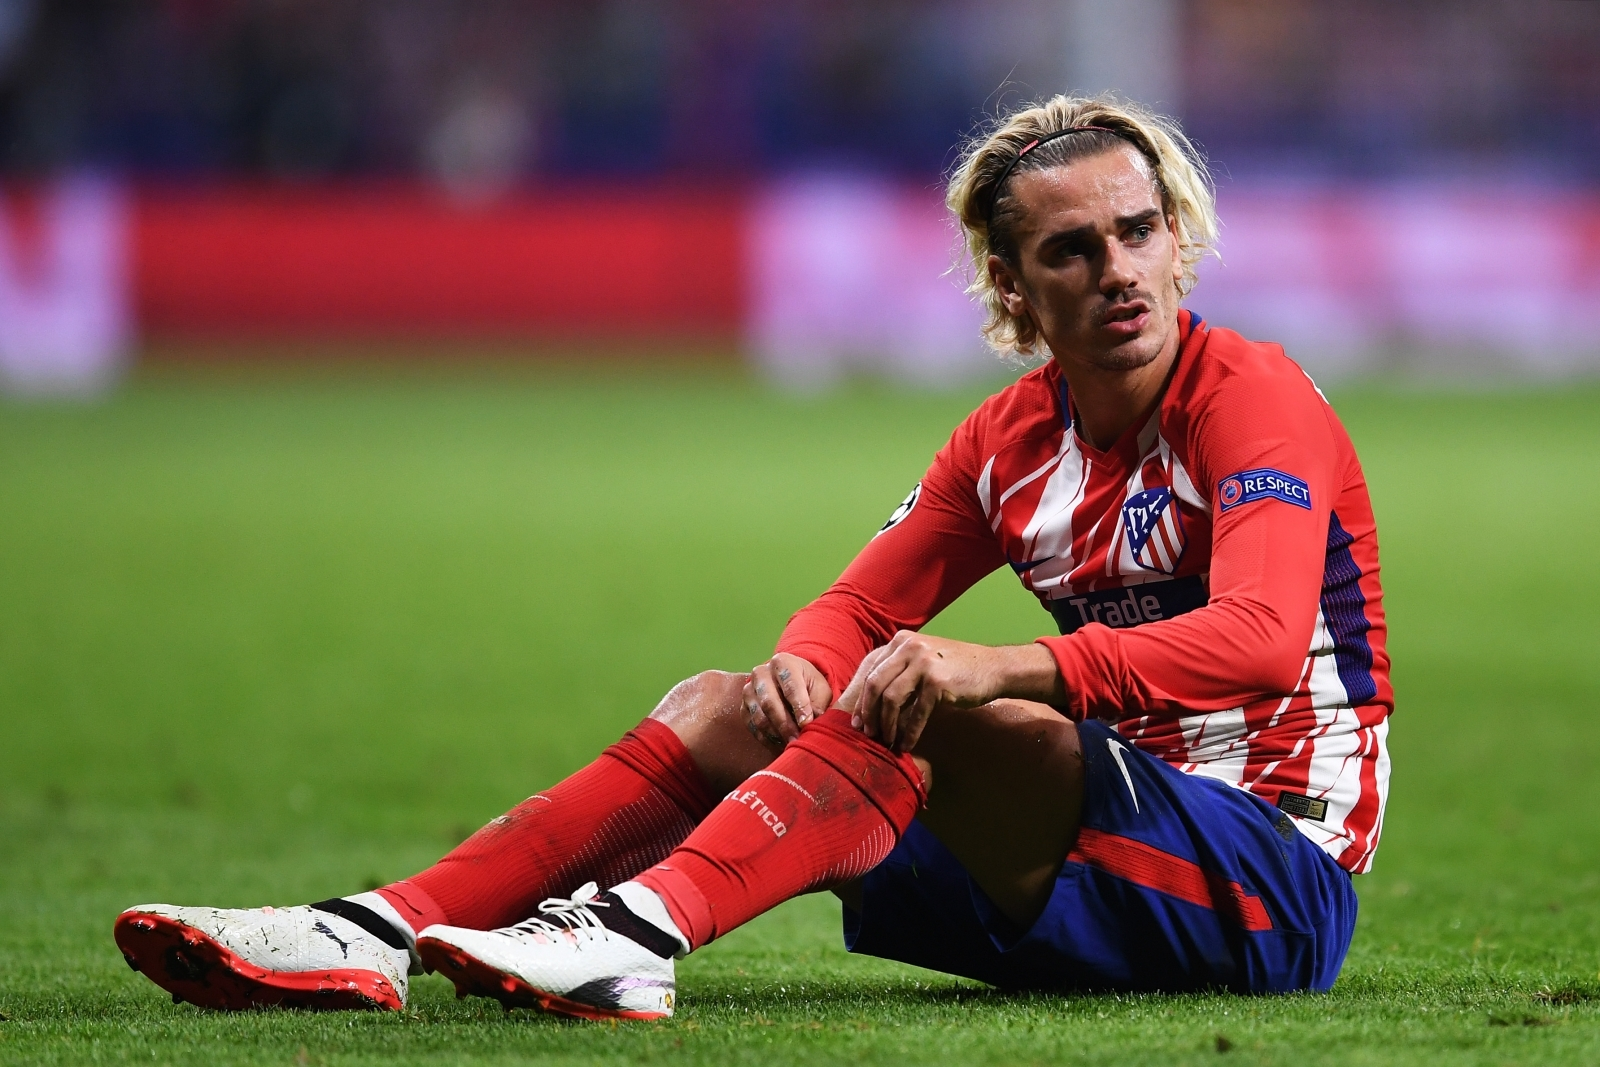 Antoine Griezmann, Barcelona reportedly agree on big-money deal